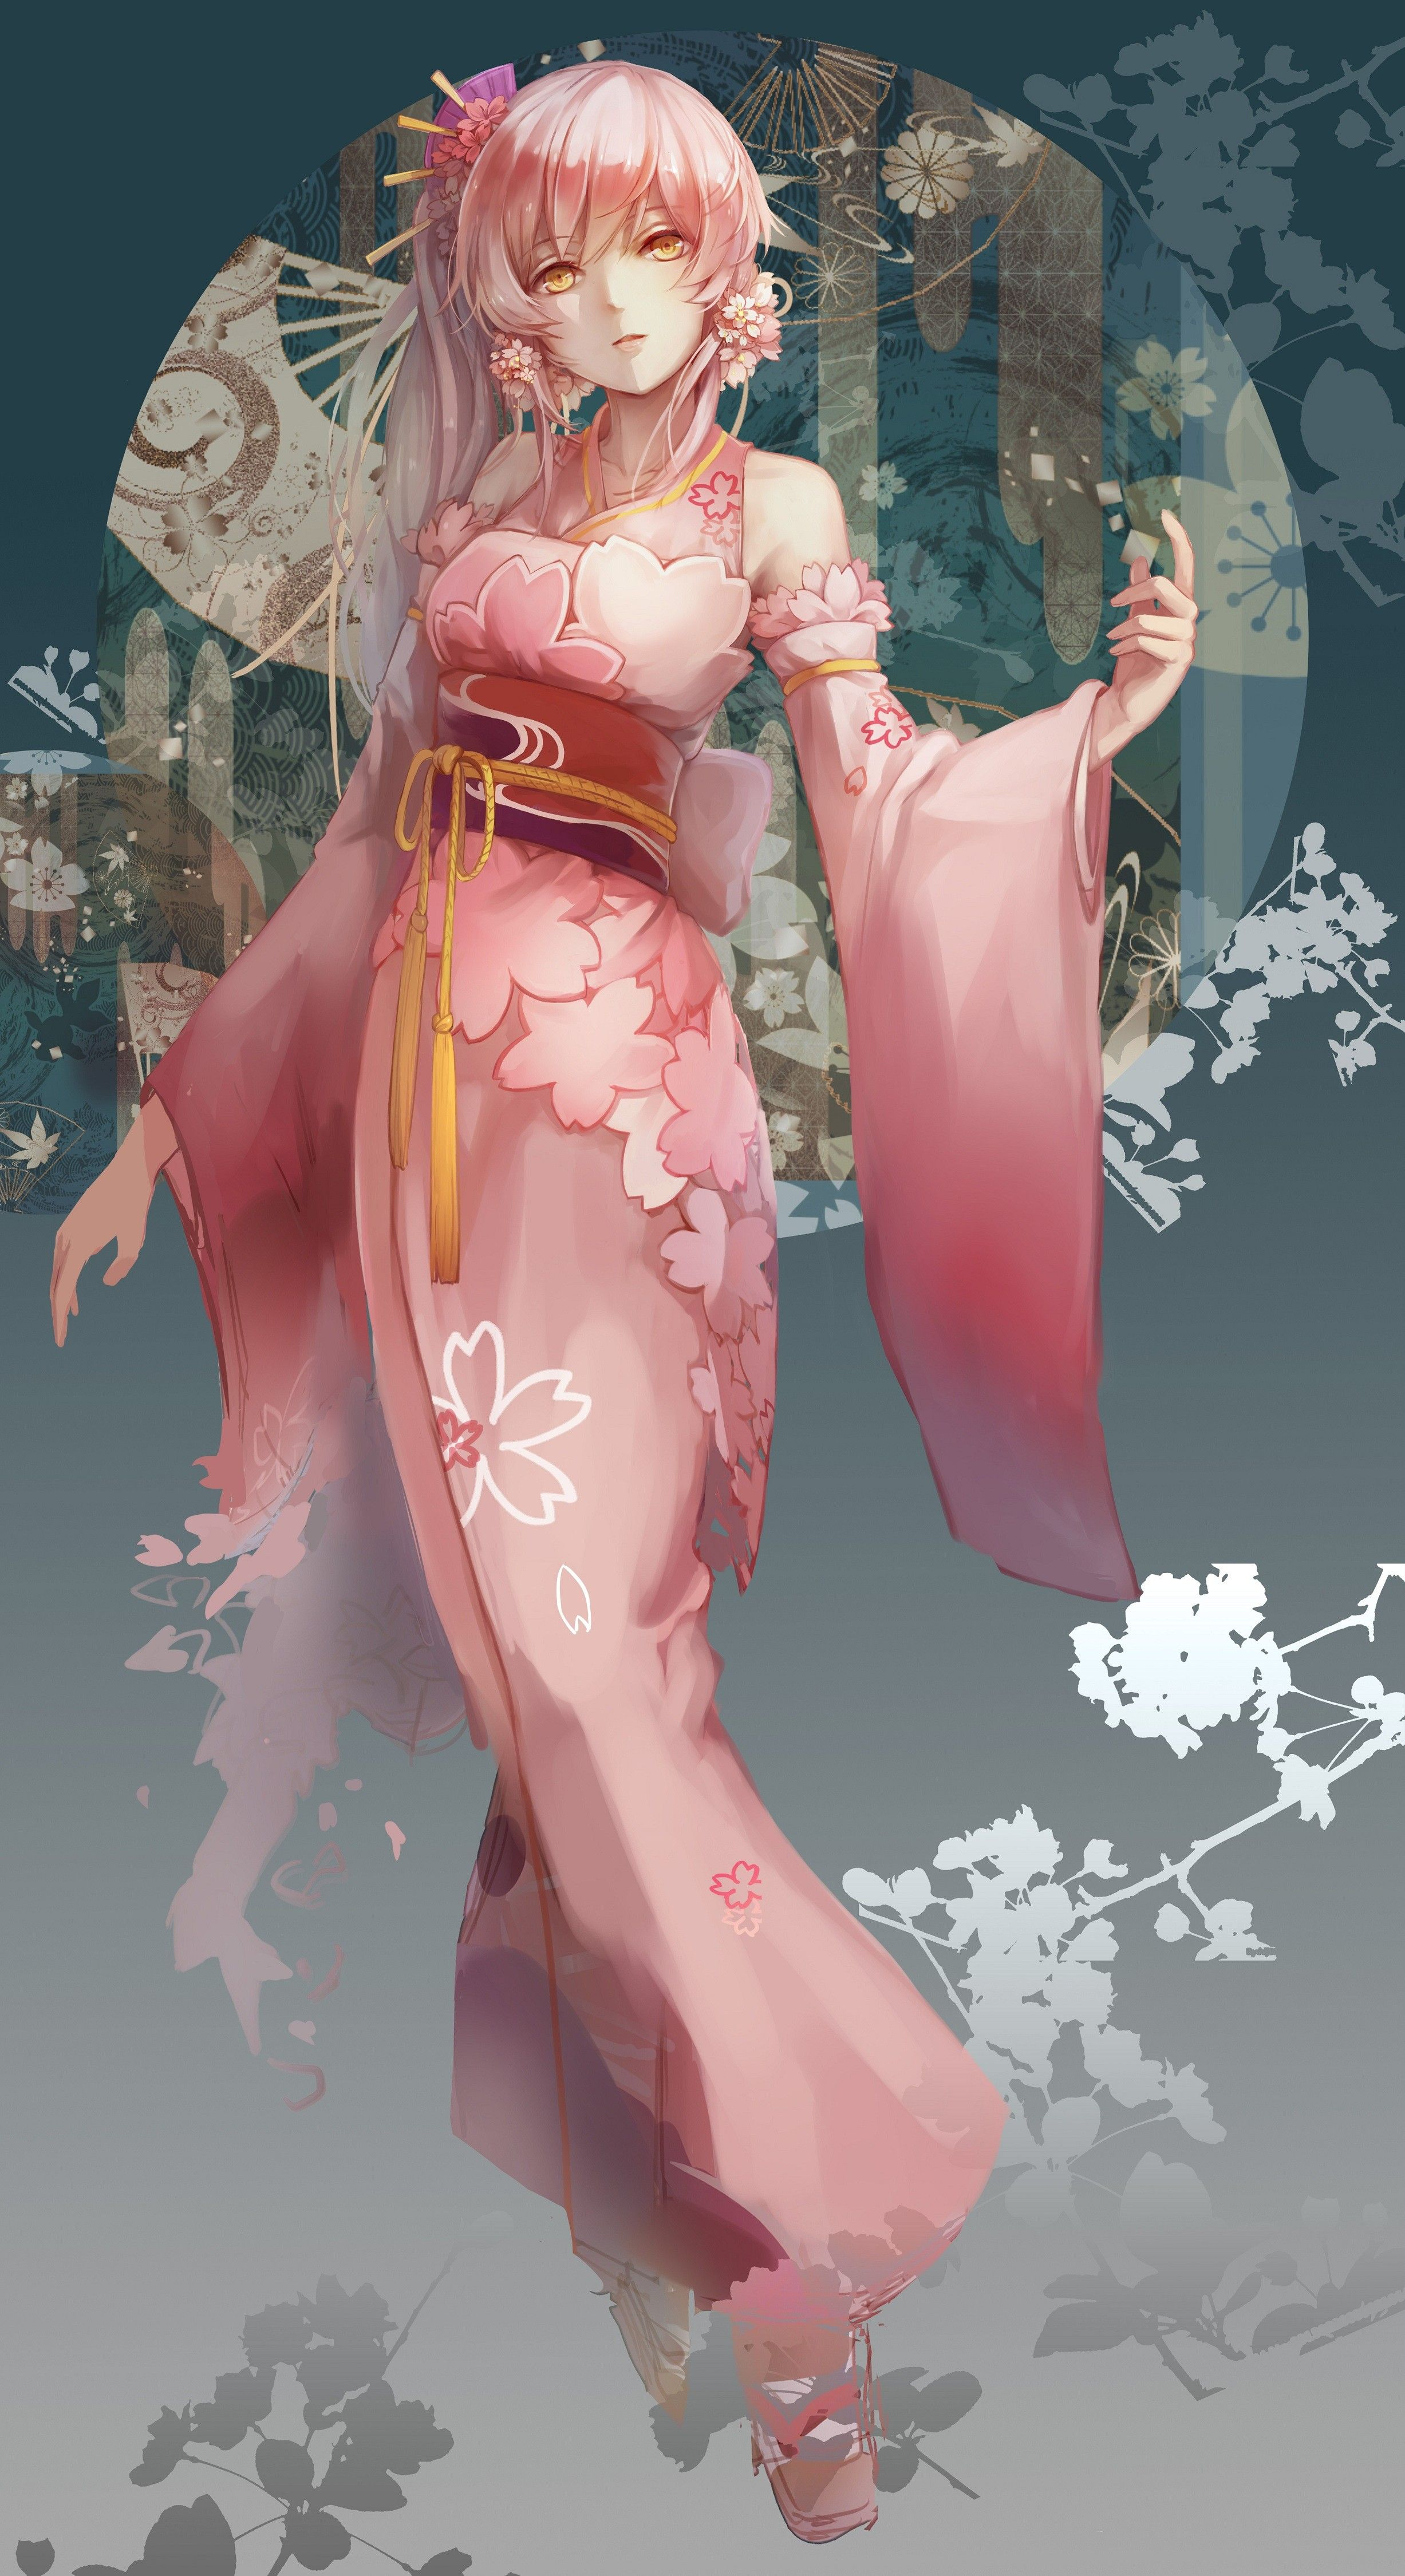 Anime 2454x4500 anime anime girls kimono Japanese clothes long hair